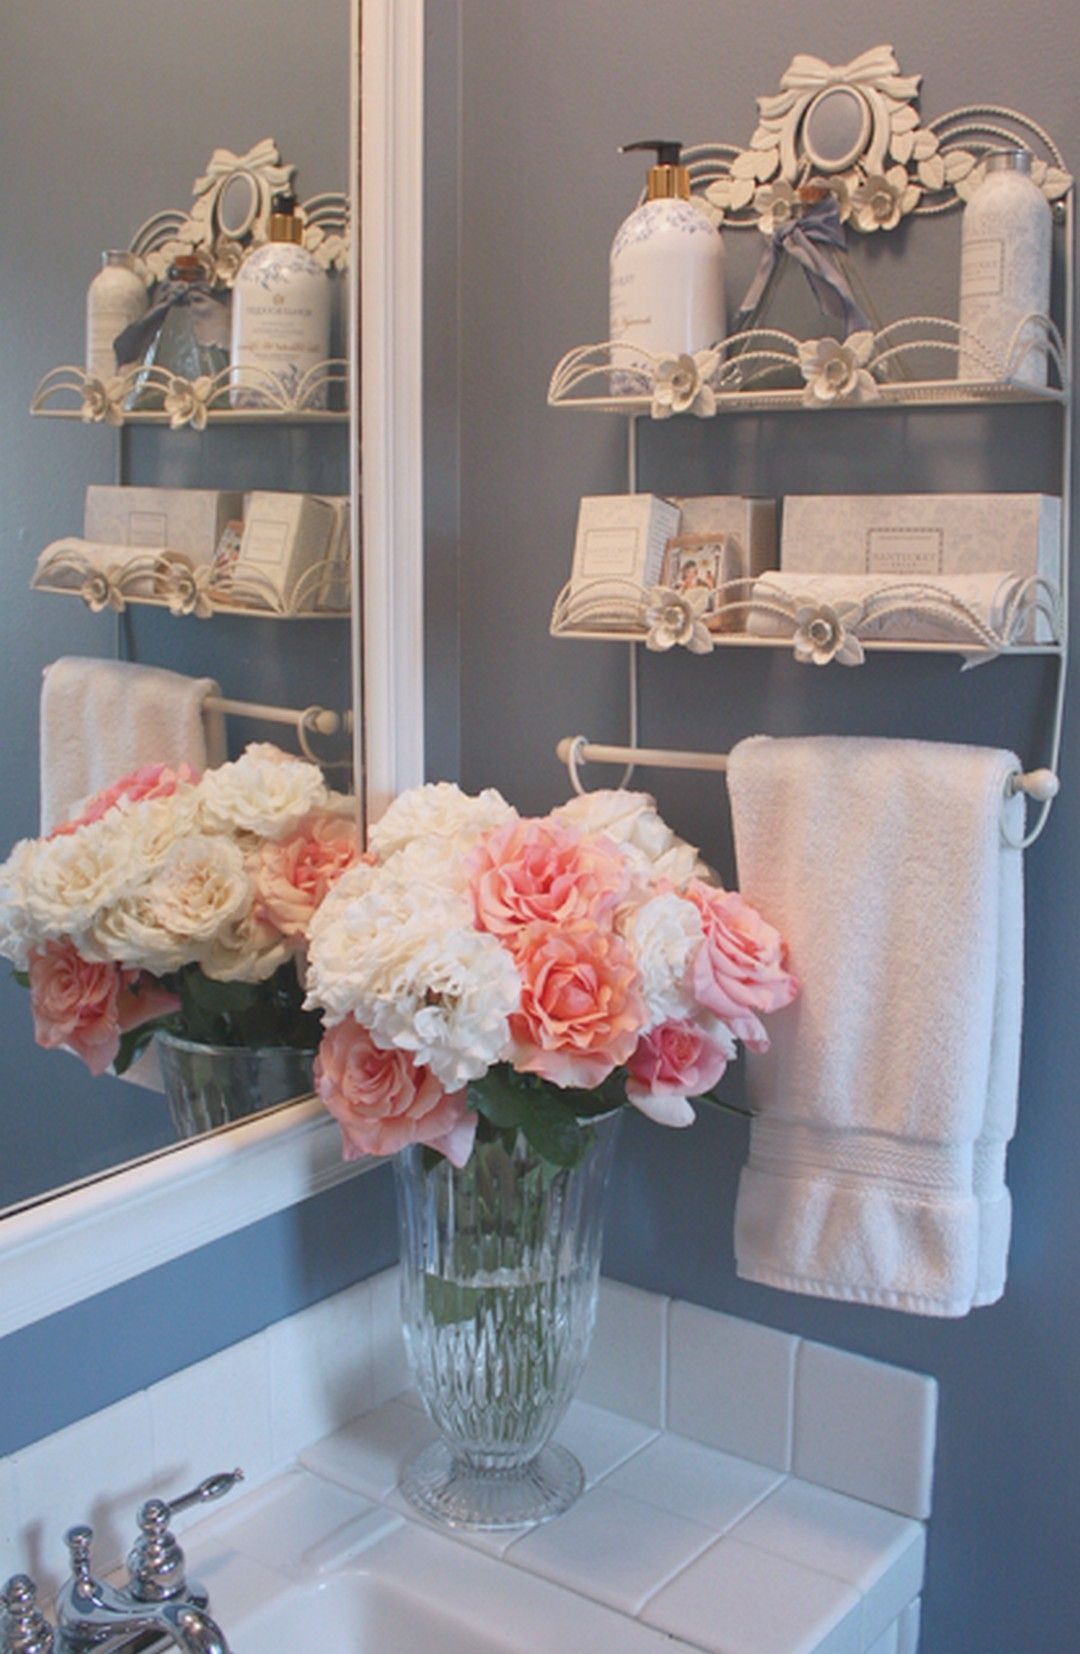 110 Adorable Shabby Chic Bathroom Decorating Ideas With Images